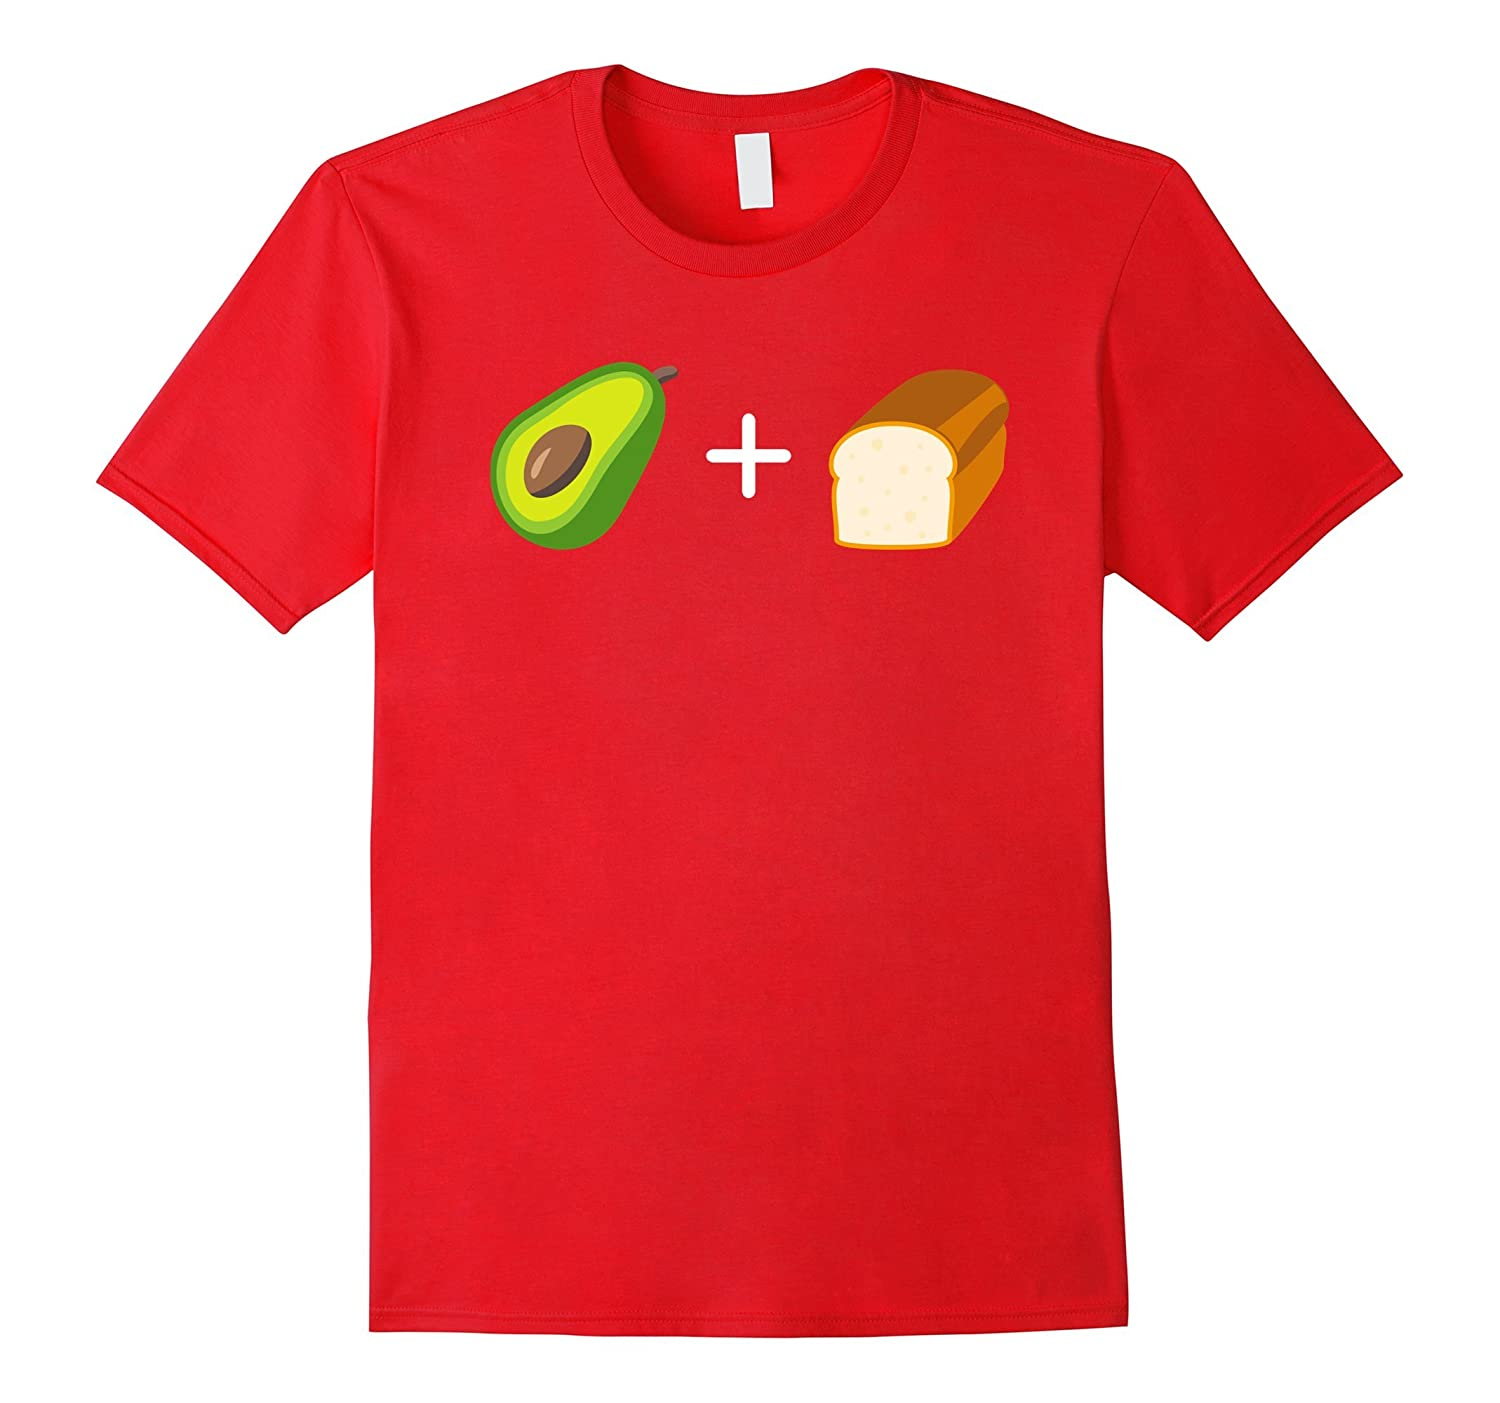 Avocado Toast Tee - The delicious meal for Avocado Lovers